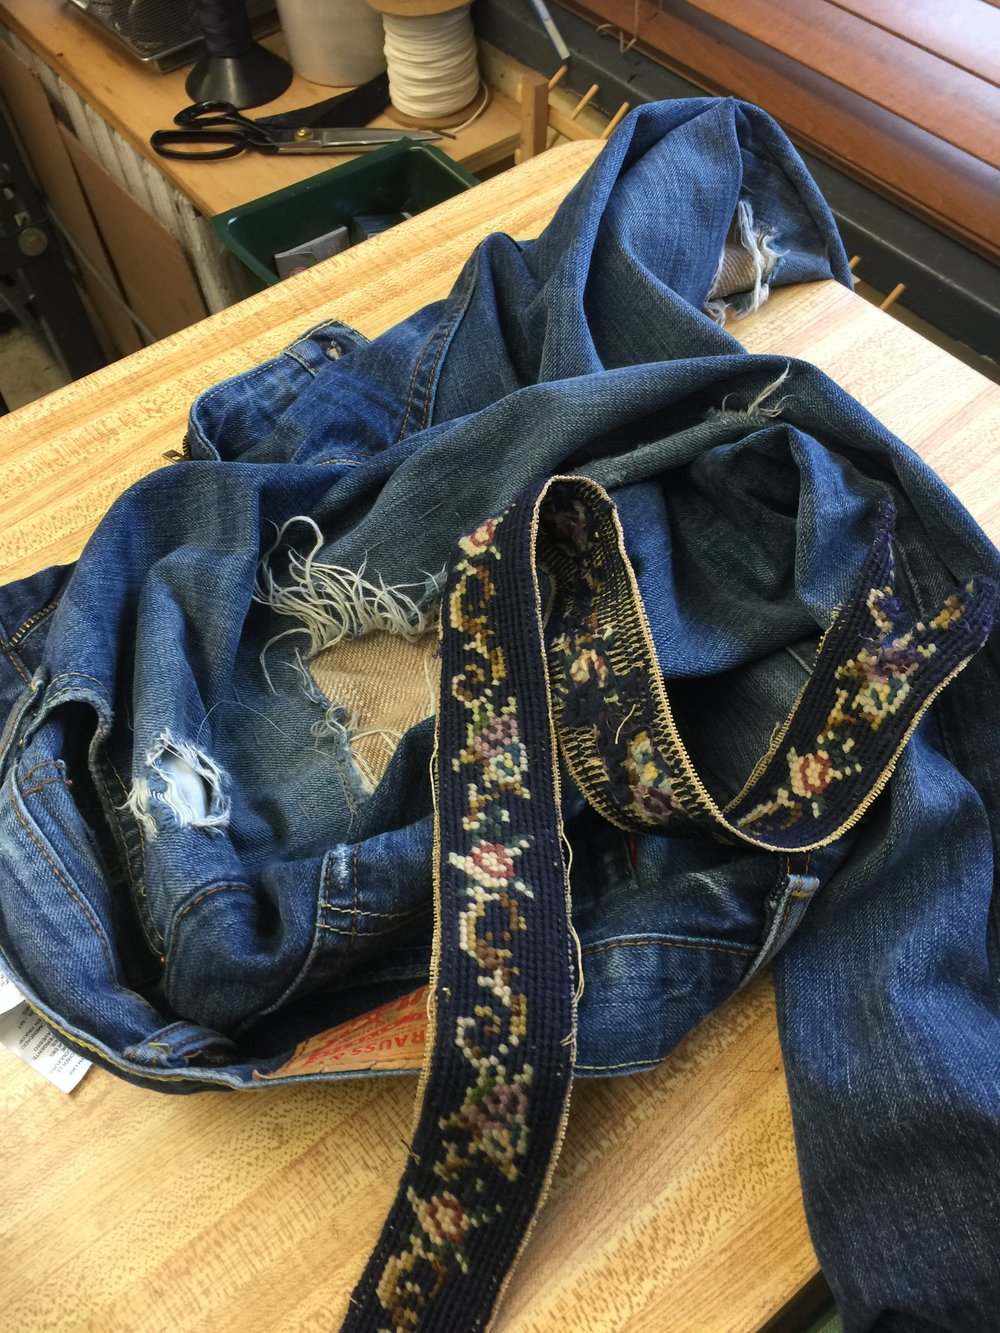 Patch is placed along the seam of the jeans and stitched into place